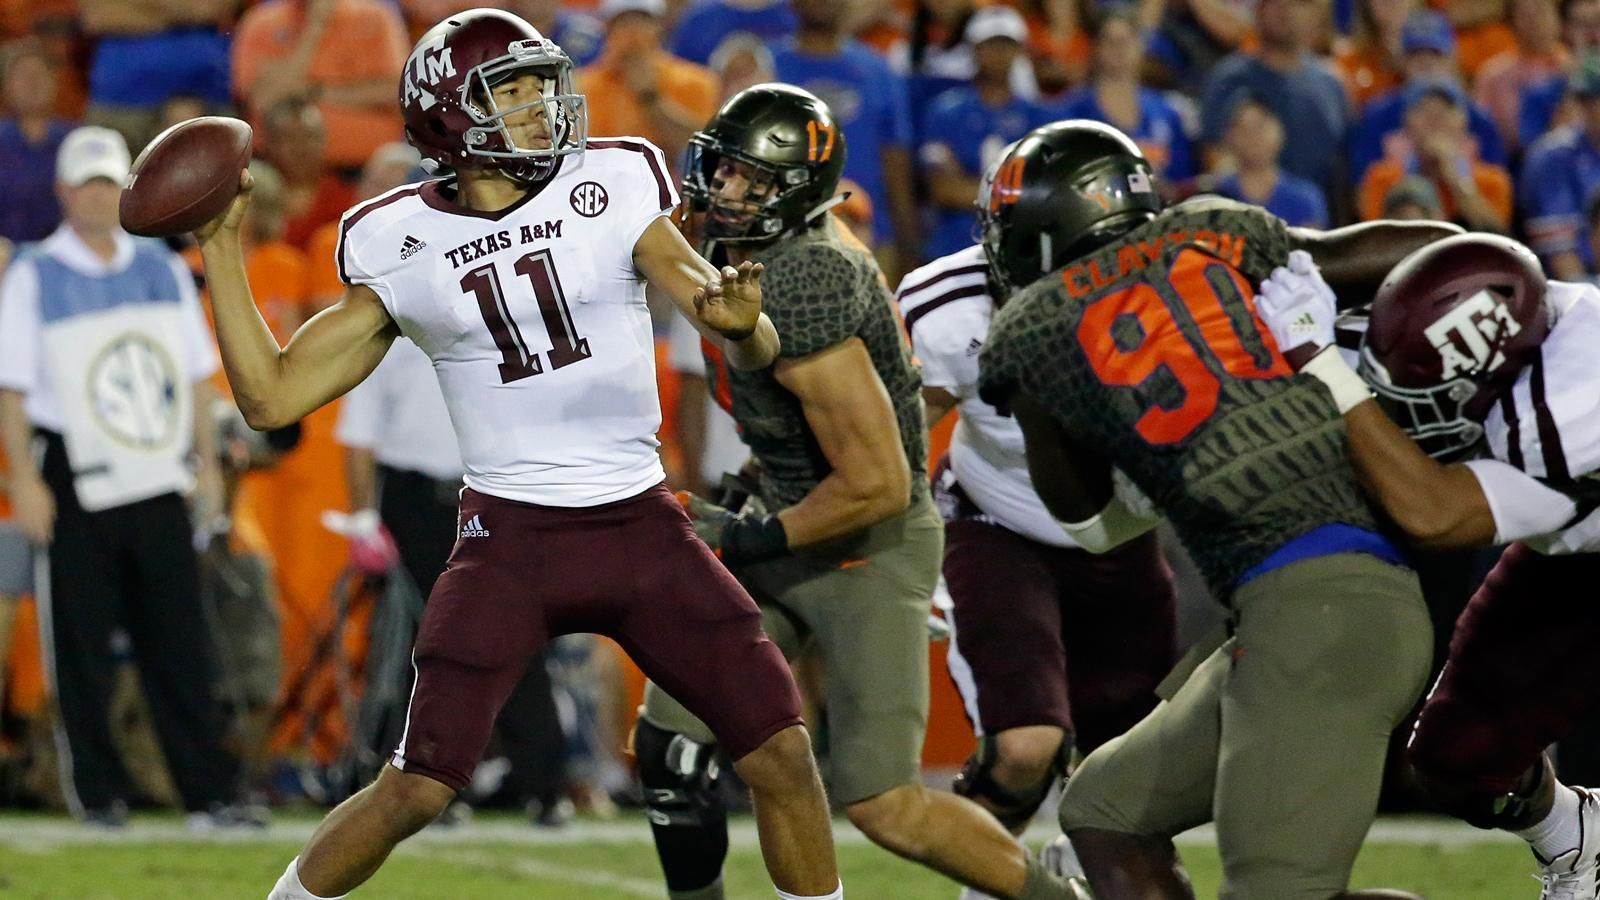 Texas A&M hangs on to beat Florida 19-17